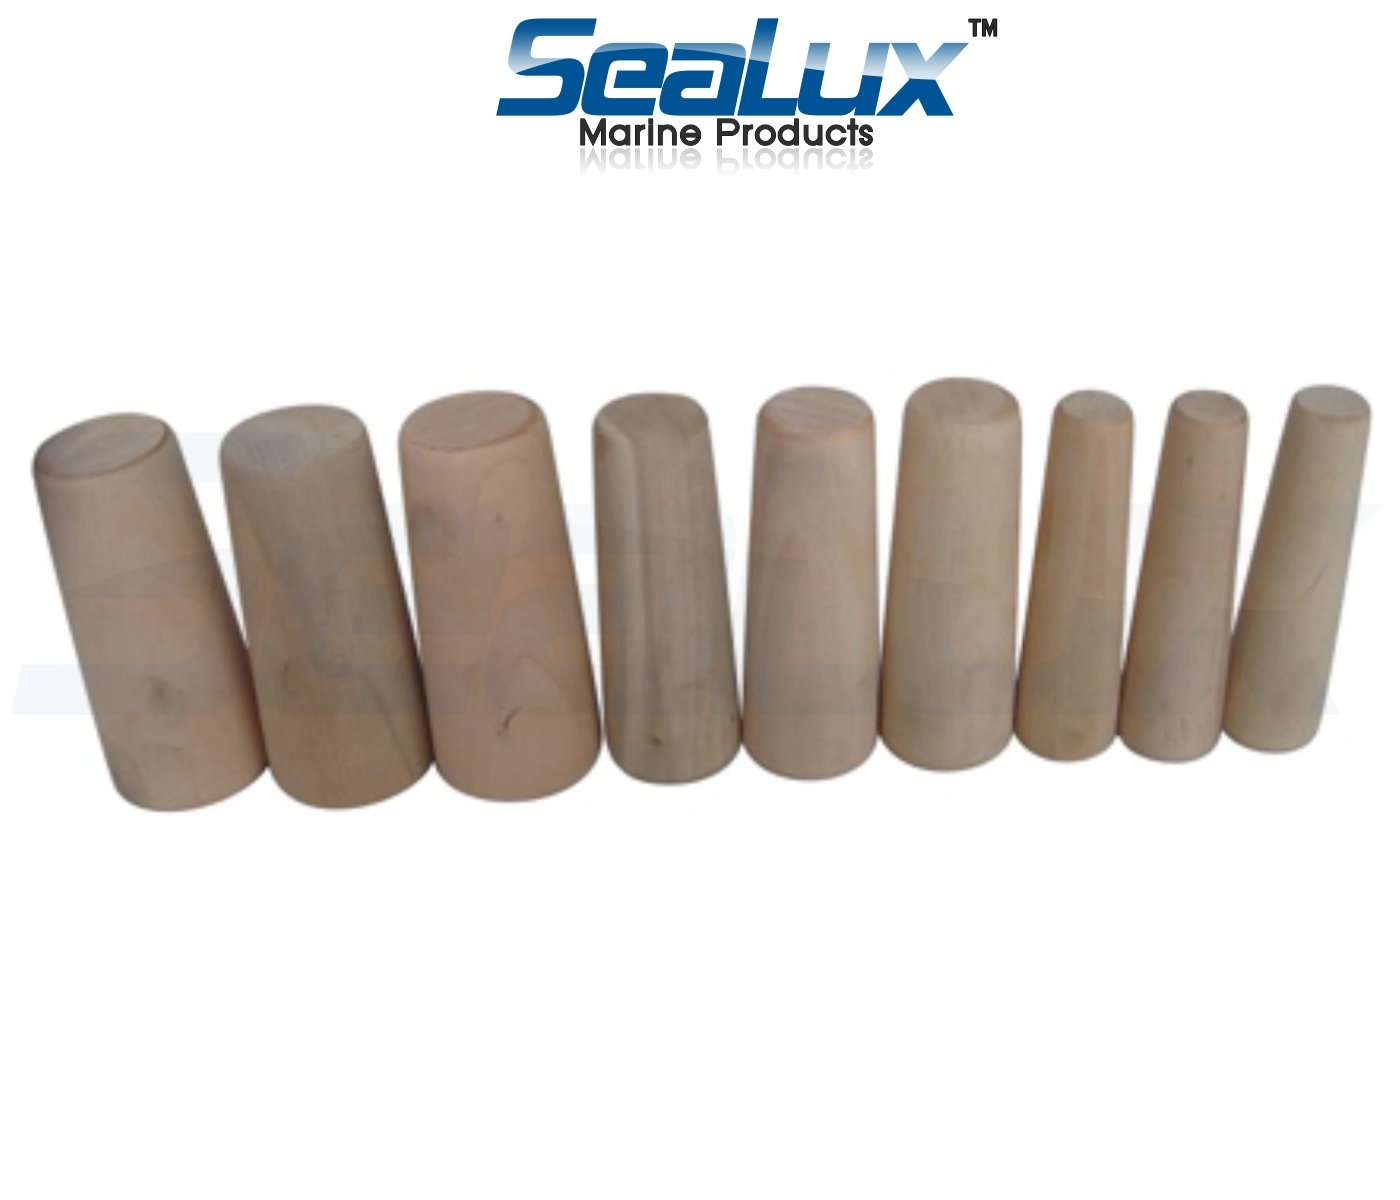 SeaLux Marine Tapered Conical Thru-hull Emergency soft Wood Plugs Set of 9 for large hull by SeaLux Marine Products (Image #1)